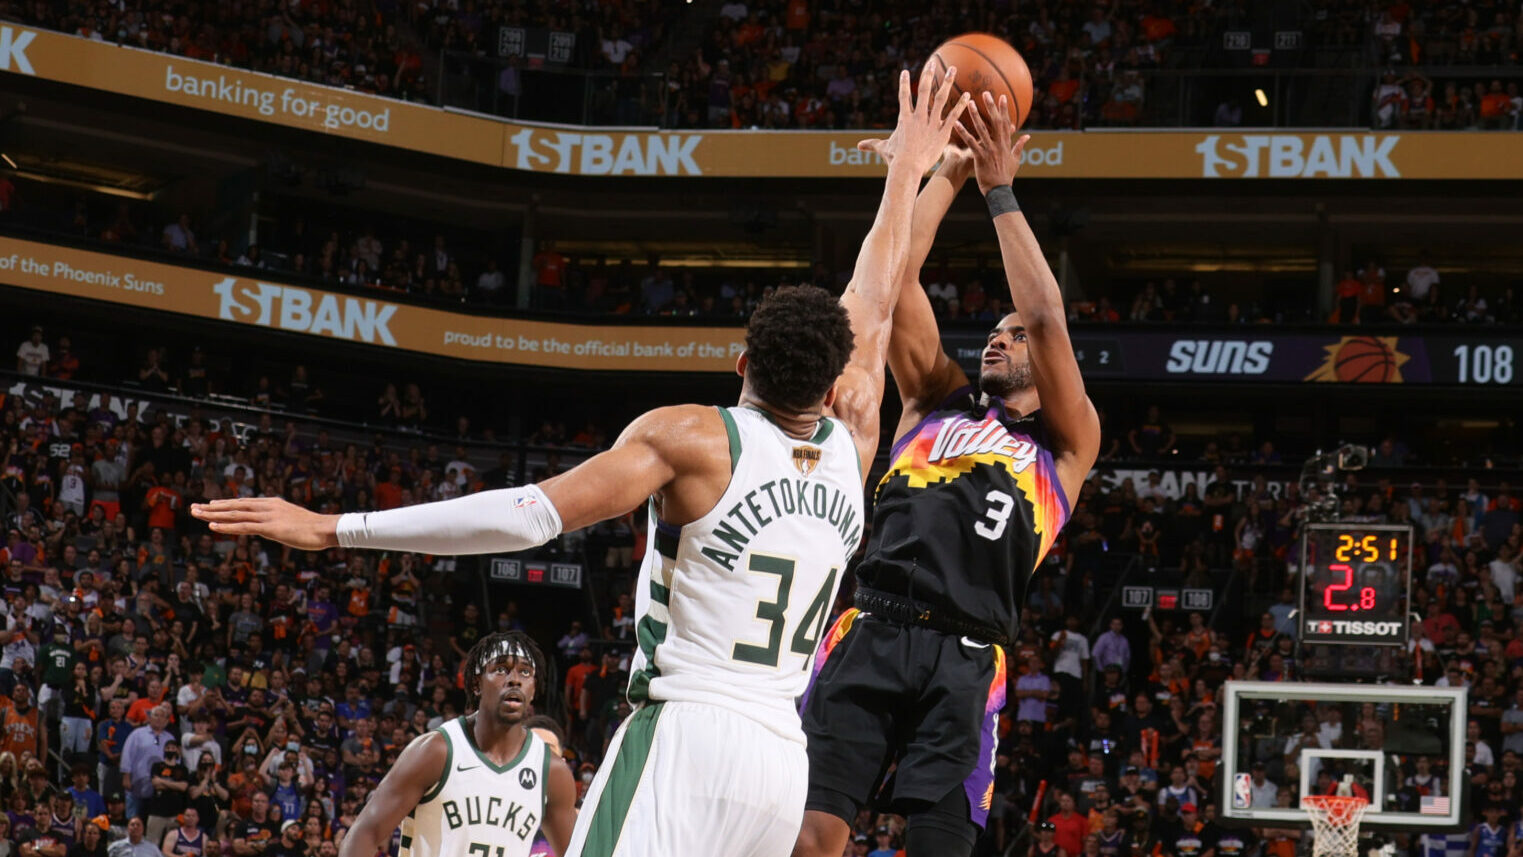 Despite 3-point barrage, Suns maintain respect for mid-range shooting